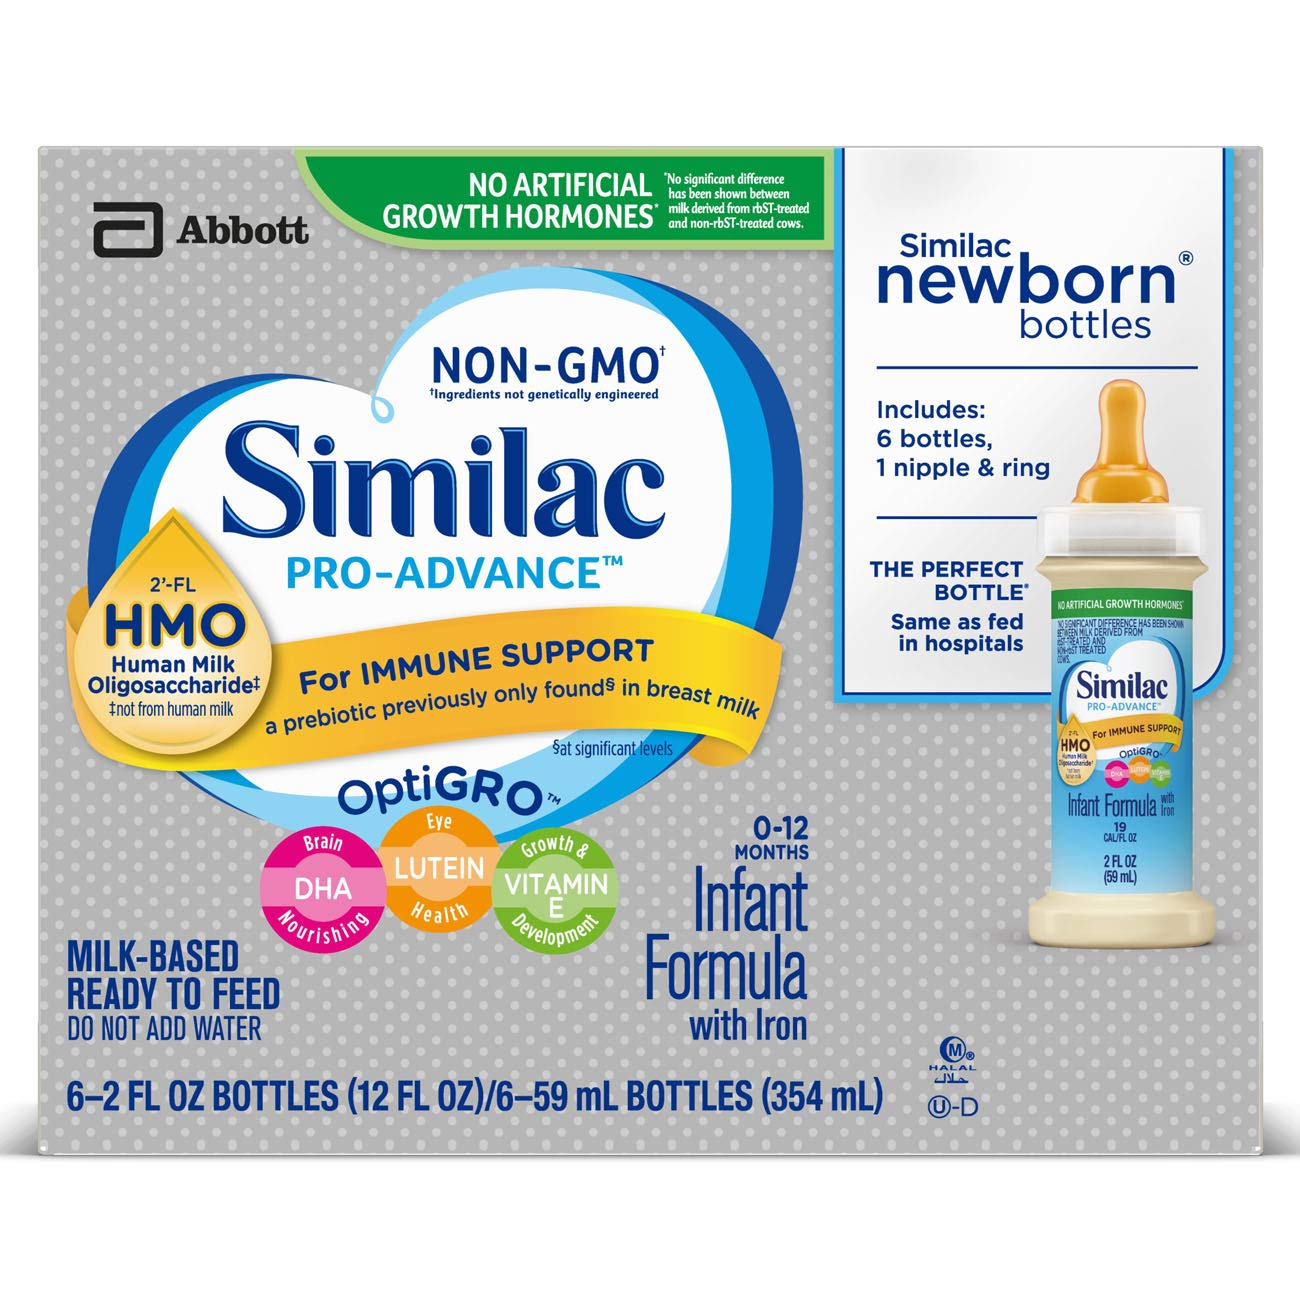 Similac Pro-Advance Infant Formula with 2'-FL HMO for Immune Support Ready to Feed Newborn Bottles, 2 fl oz (Special Discount Offer) (24 by Similac (Image #2)